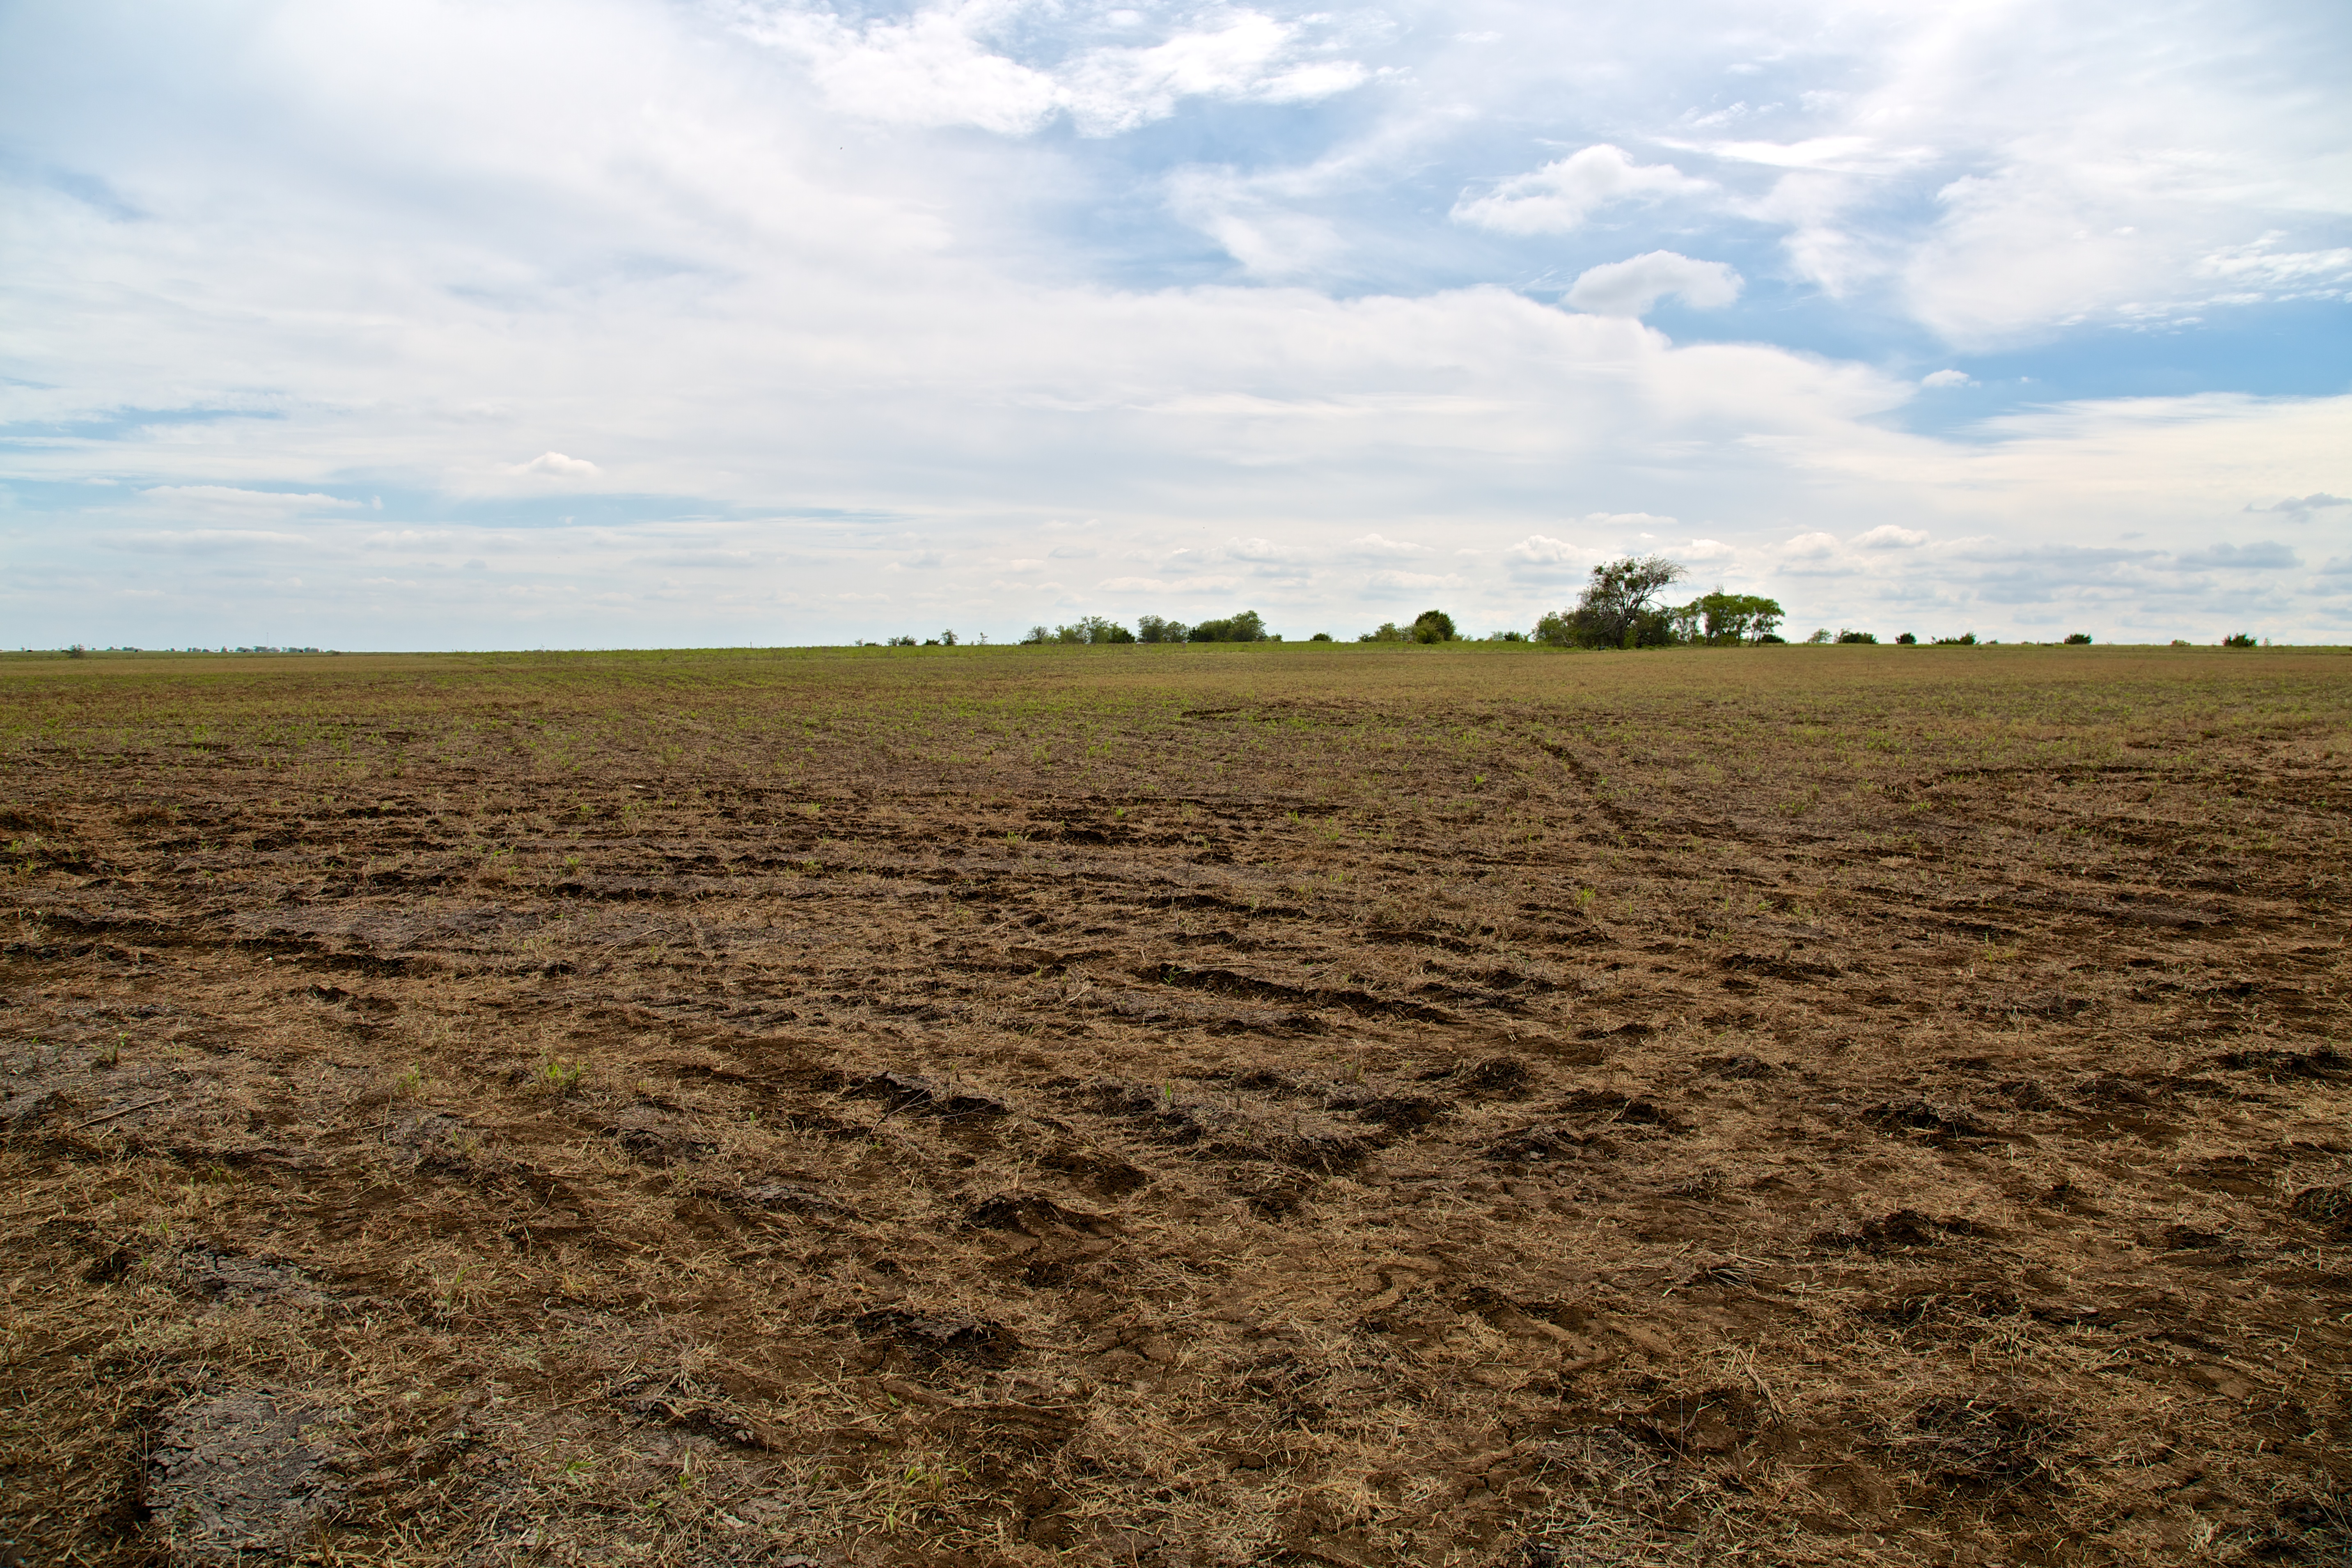 Firefly's test site is currently a big expanse of empty Texas prairie.